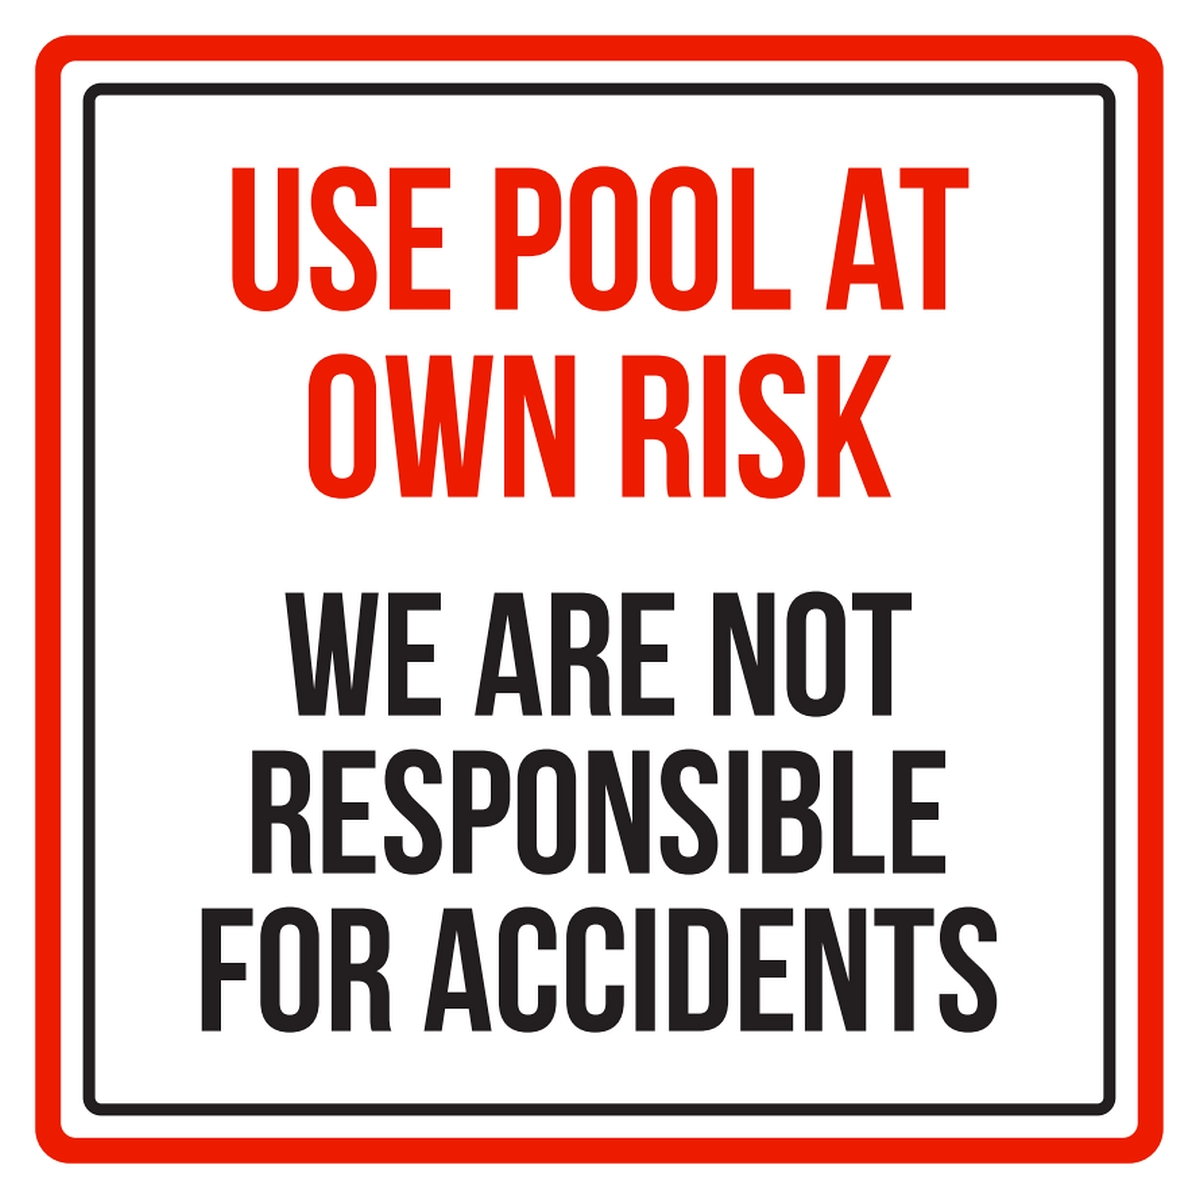 Use Swimming Pool At Own Risk, We Are Not Responsible For Accidents Spa Warning Sign - 9x9